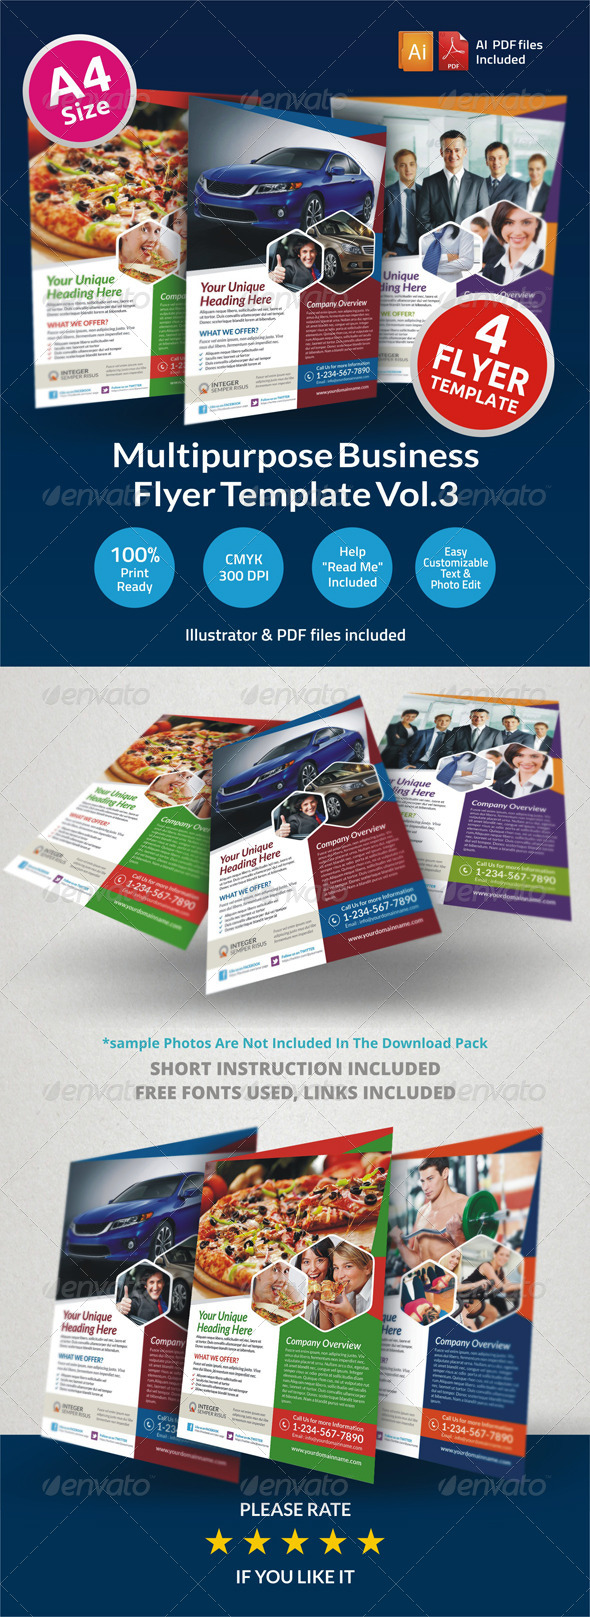 Multipurpose Business Flyer Vol.3